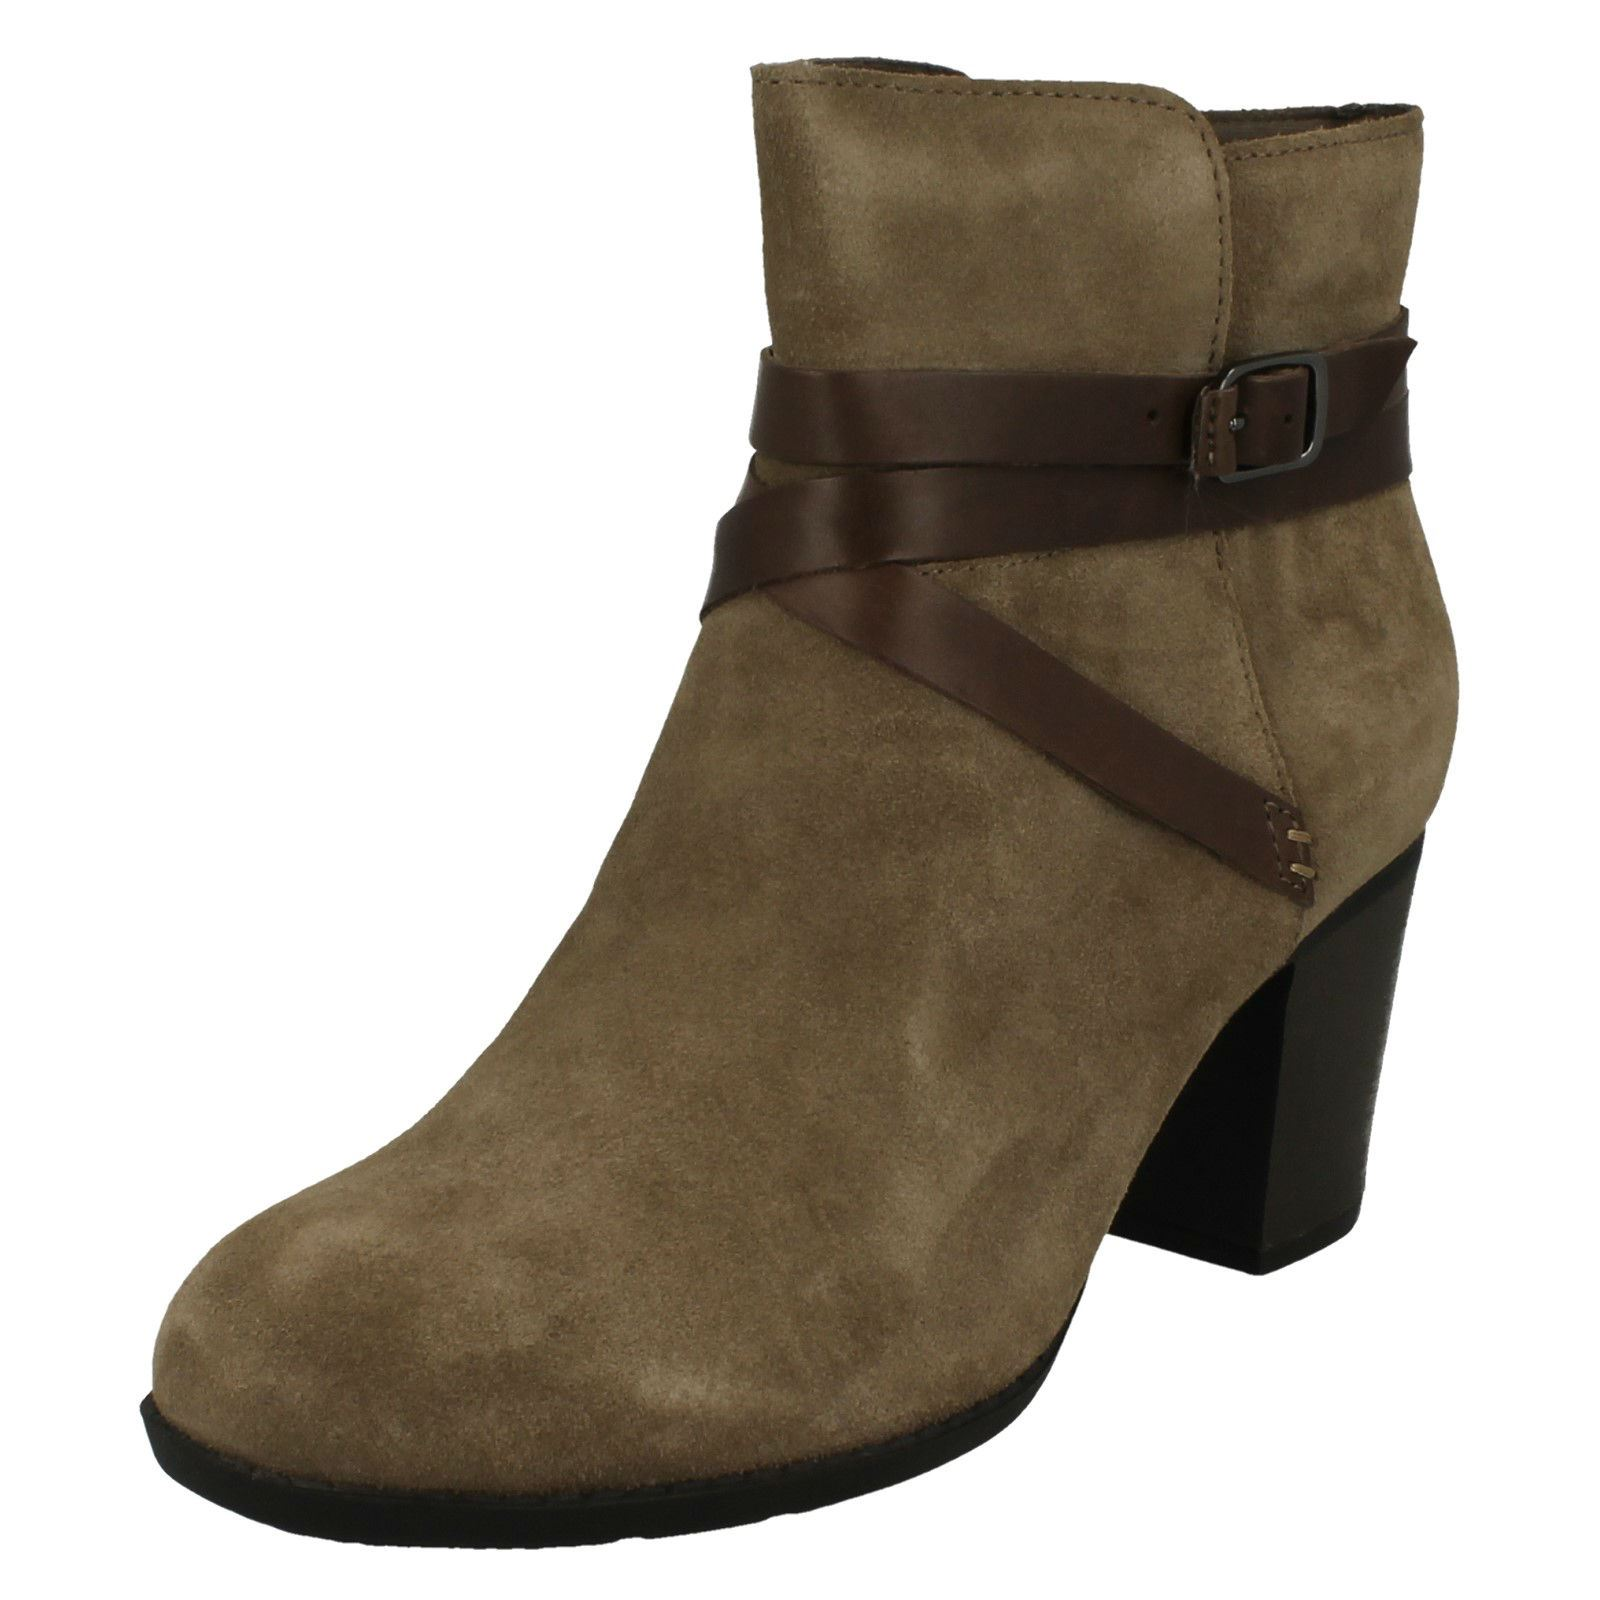 Clarks Brown Suede Enfield Tess Seam Detail Ankle Boots NEW